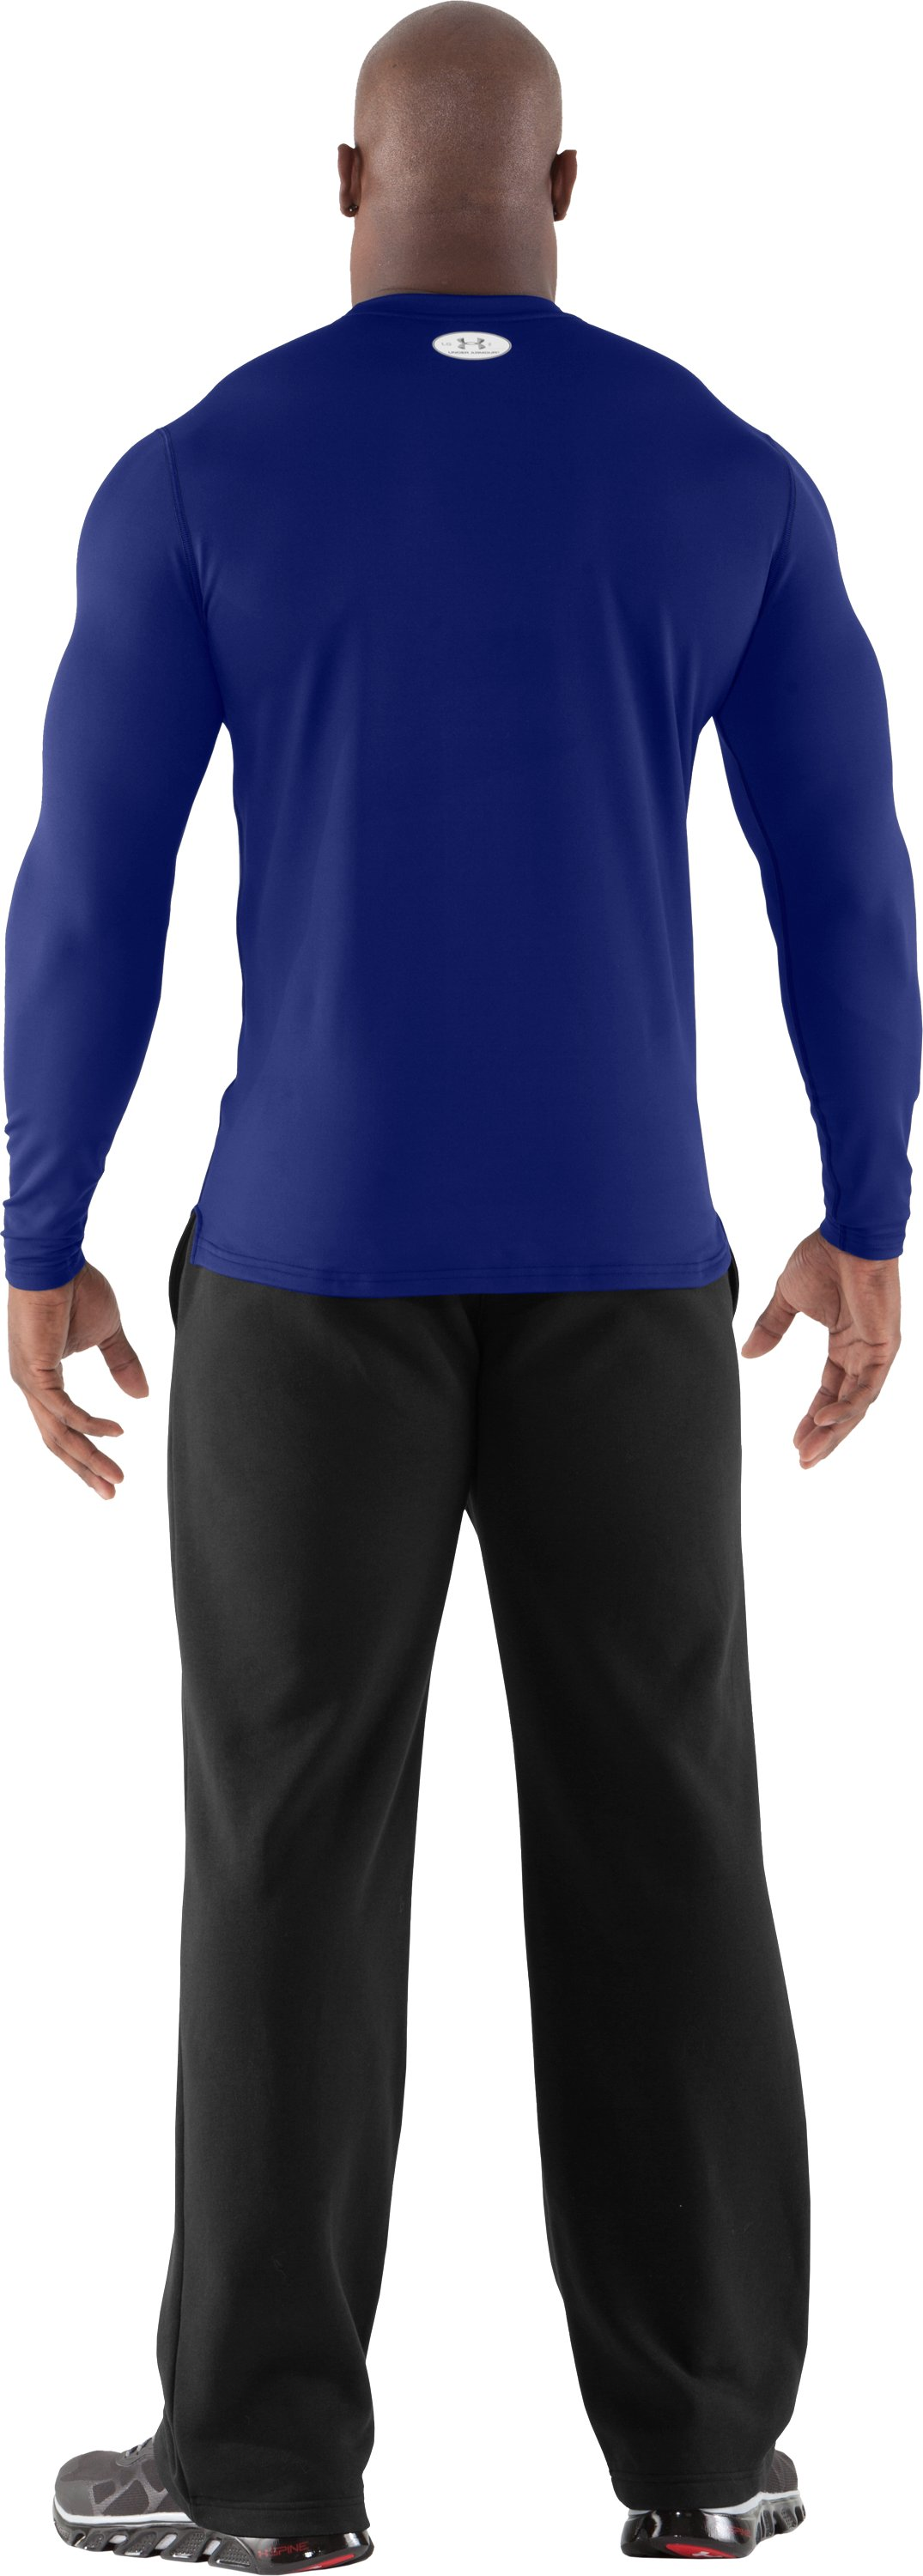 Men's ColdGear® Fitted Long Sleeve Crew, Royal, Back